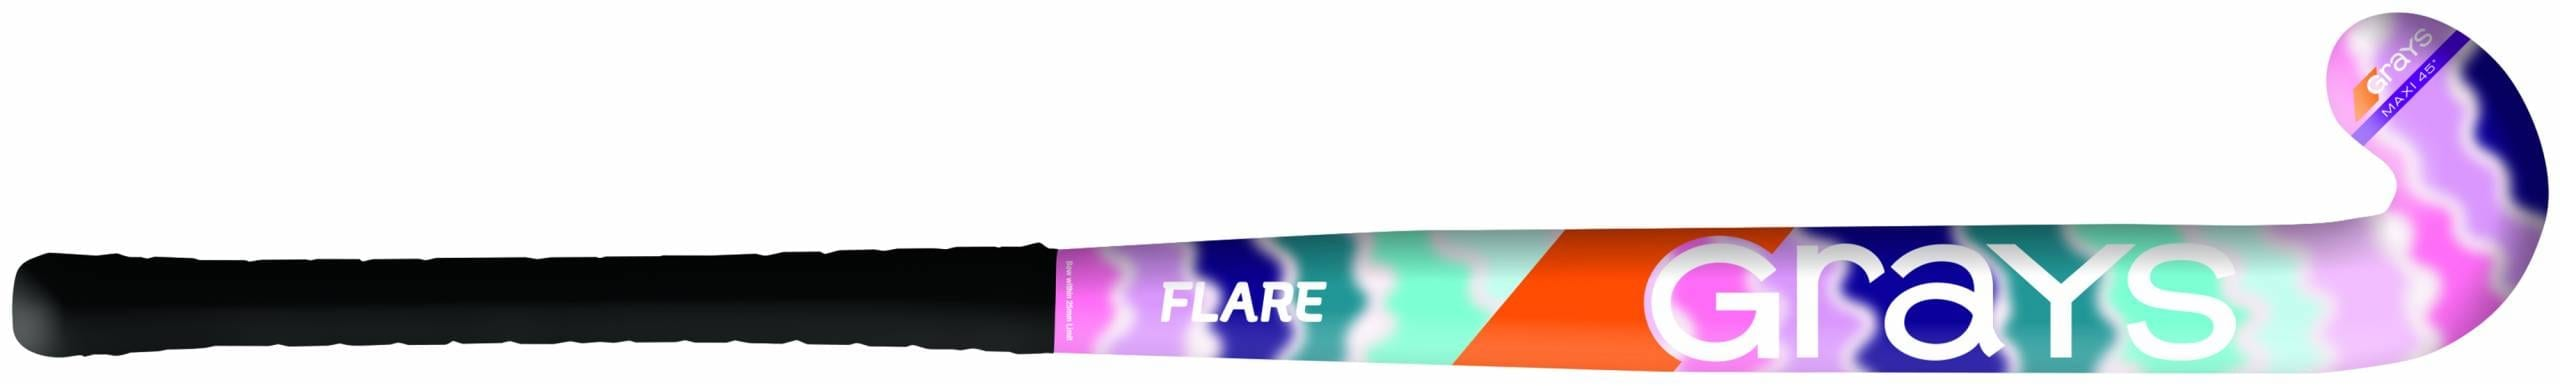 9021-GRAYS-Flare-Revised-2019